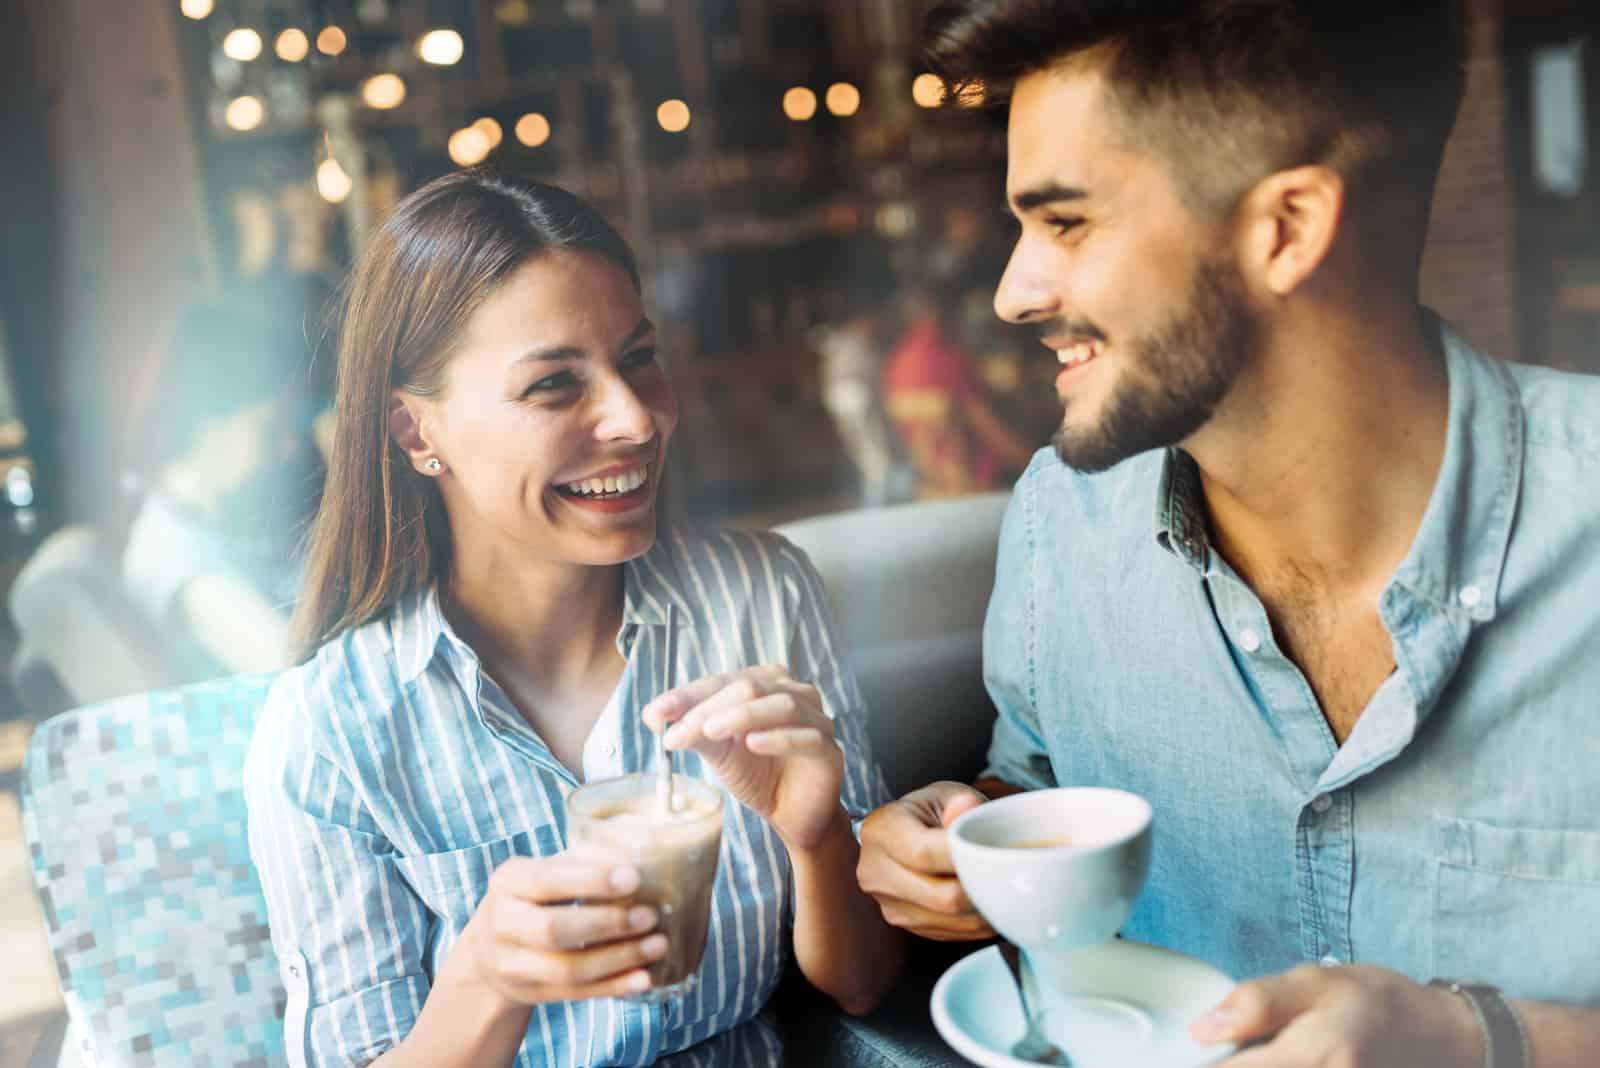 a smiling loving couple sitting and drinking coffee